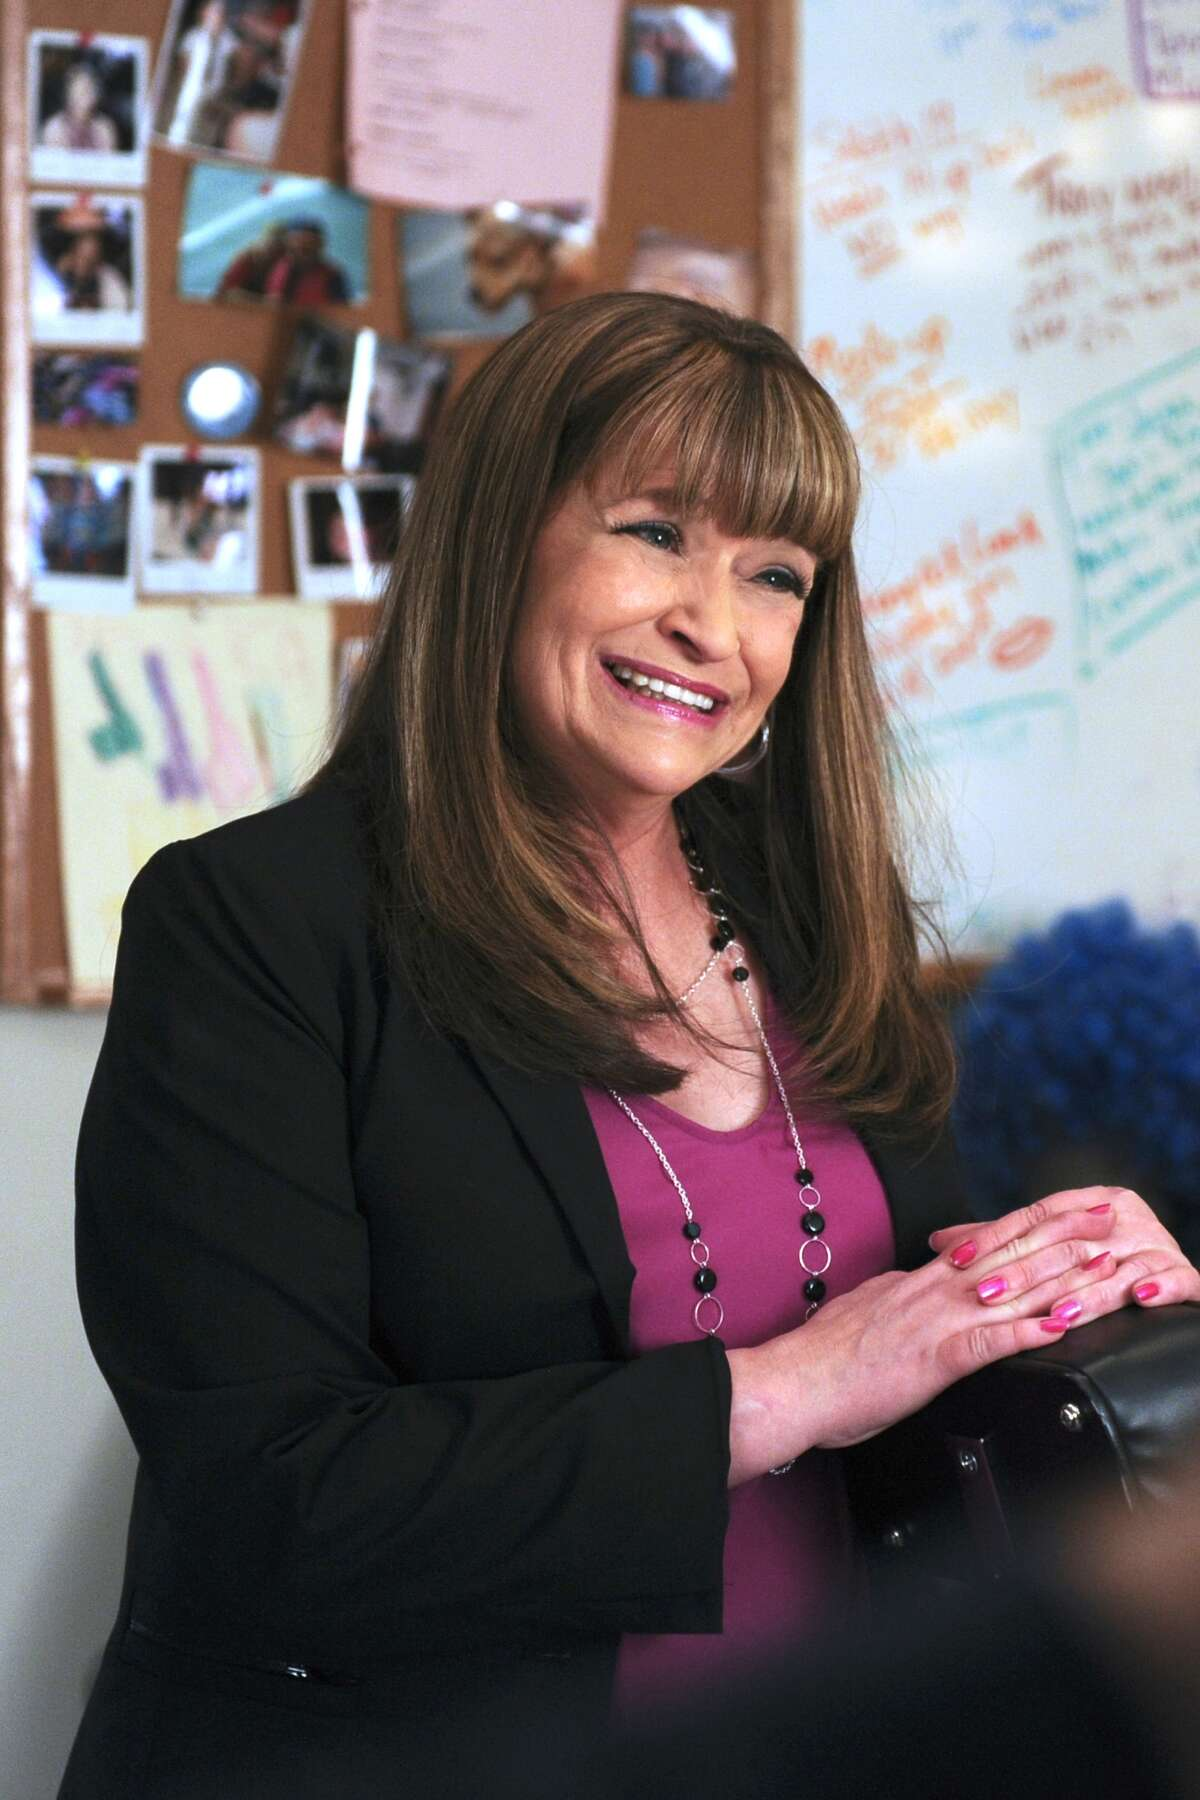 Jan Hooks , a Saturday Night Live cast member from 1986-1991, died on October 9, 2014 at the age of 57, according to TMZ. The official cause of death is unknown, but TMZ reports that the comedienne had been battling a serious illness.